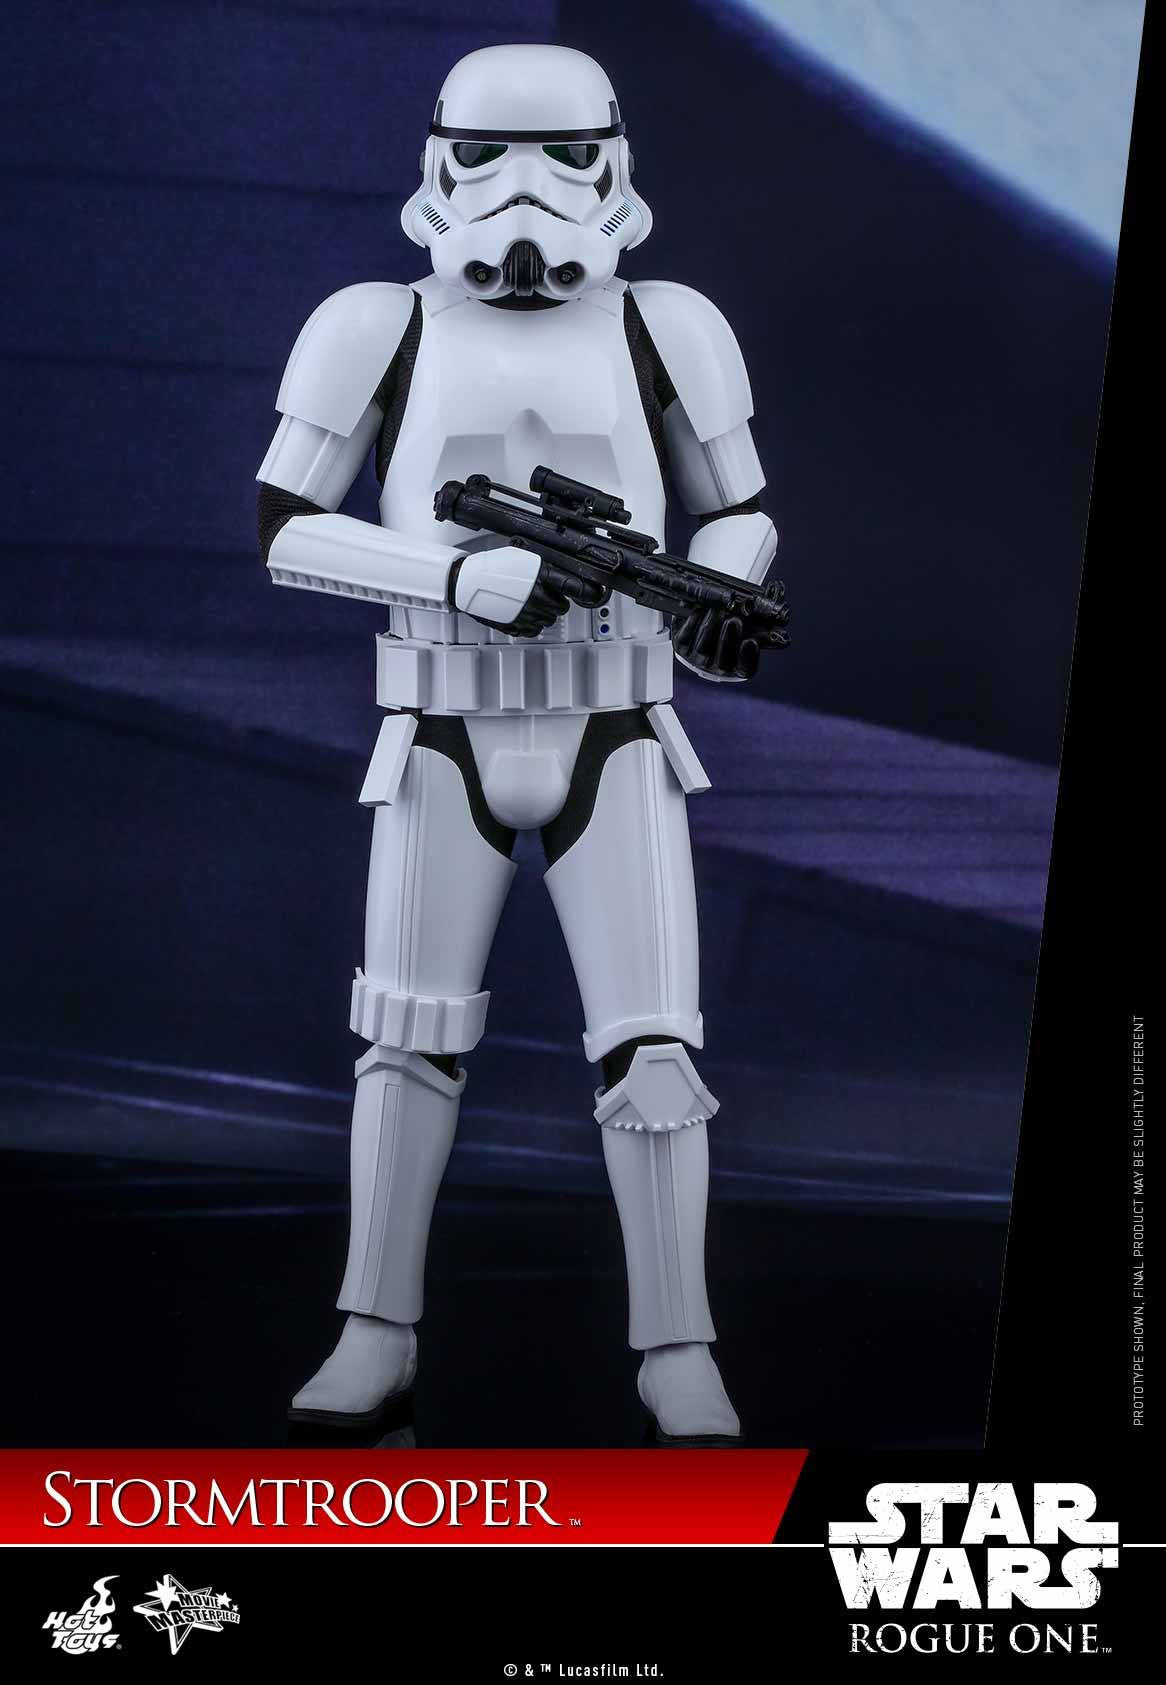 Hot Toys - MMS393 - Rogue One: A Star Wars Story - Stormtrooper - Marvelous Toys - 4